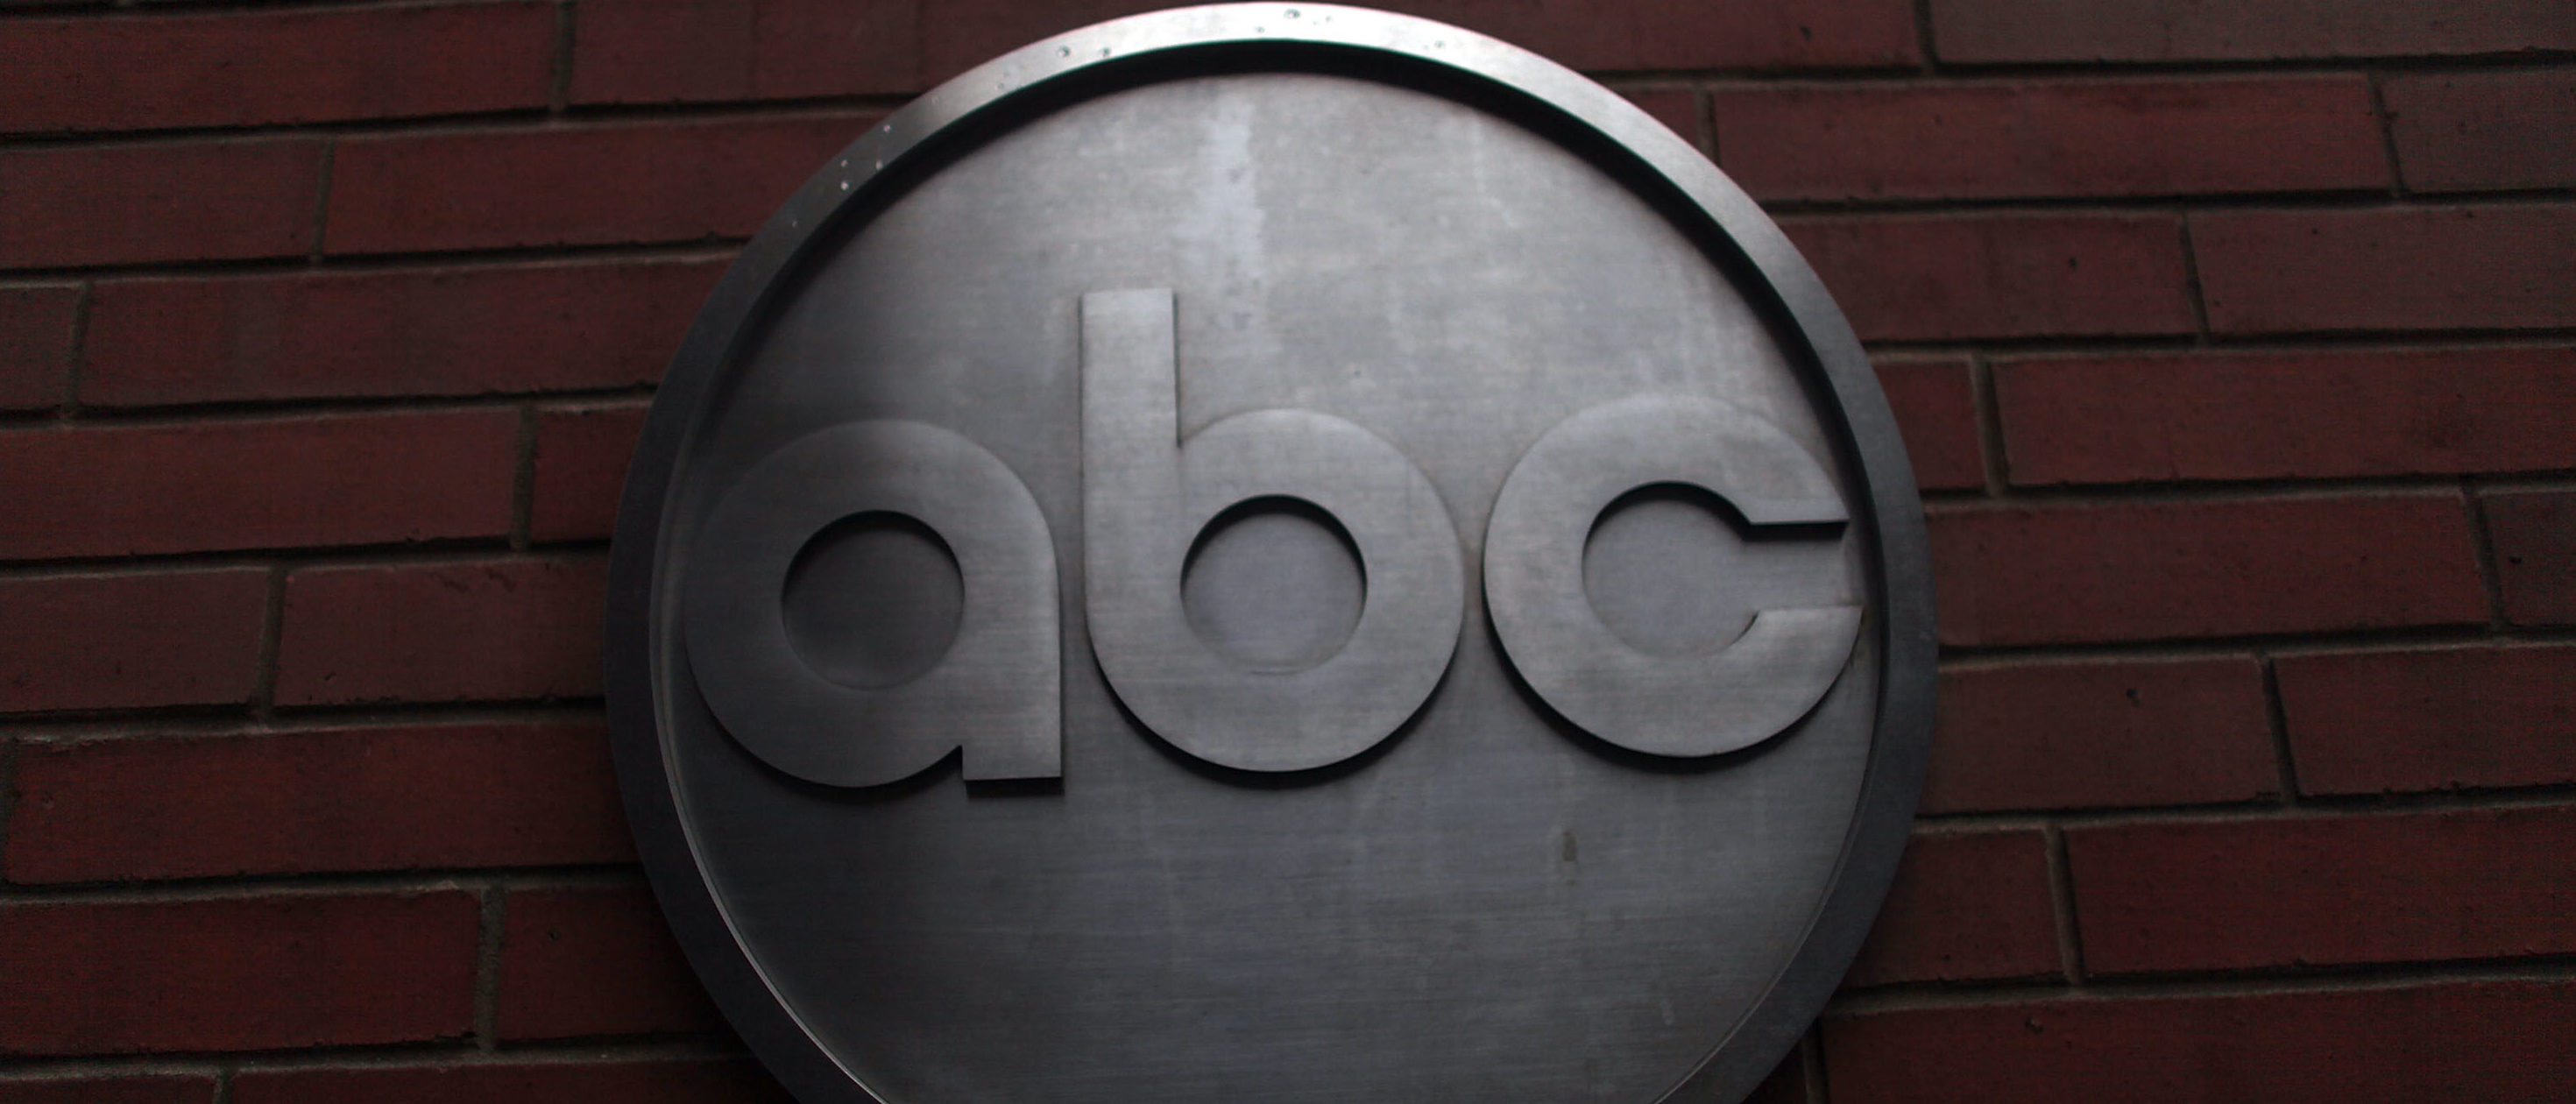 ABC News Suspends Reporter On Eve Of Project Veritas Exposure